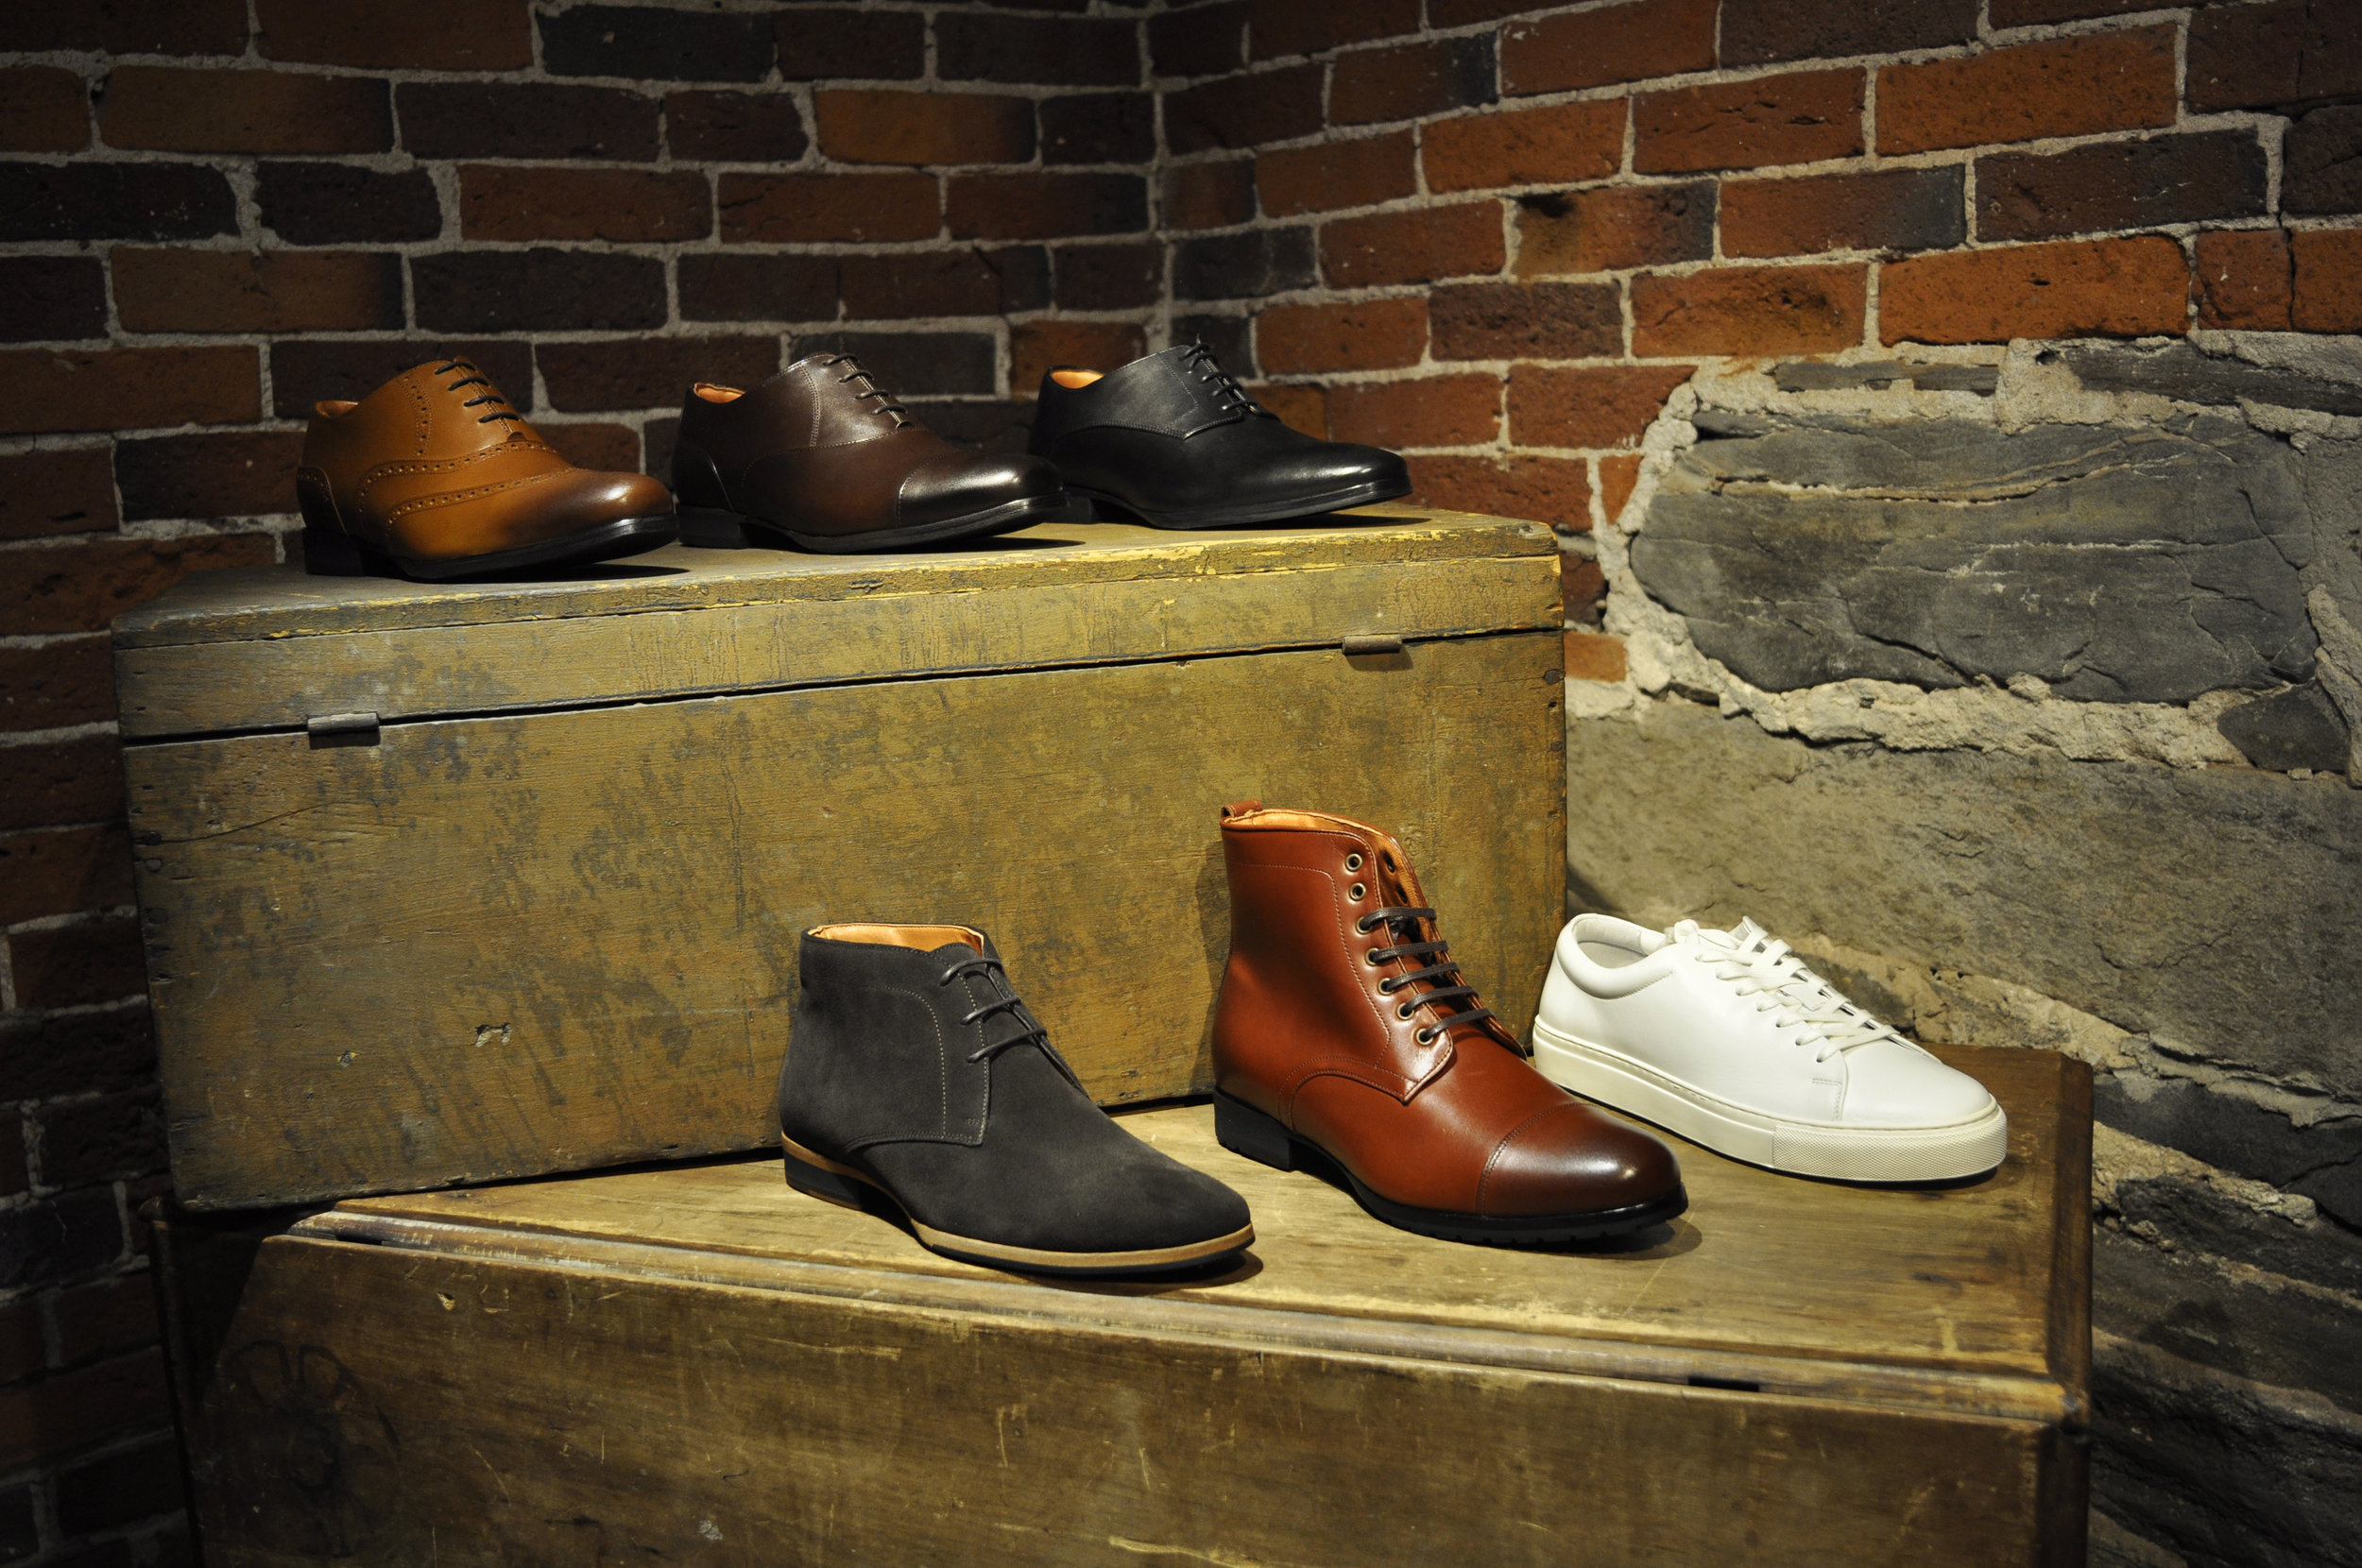 From Top Left clockwise: The  Senna Wingtip ; The  Closer Captoe ; The  Barrister Derby ; The  Glider Cupsole Sneaker ; The  Breakaway Ankle Boot ; The  Striker Chukka